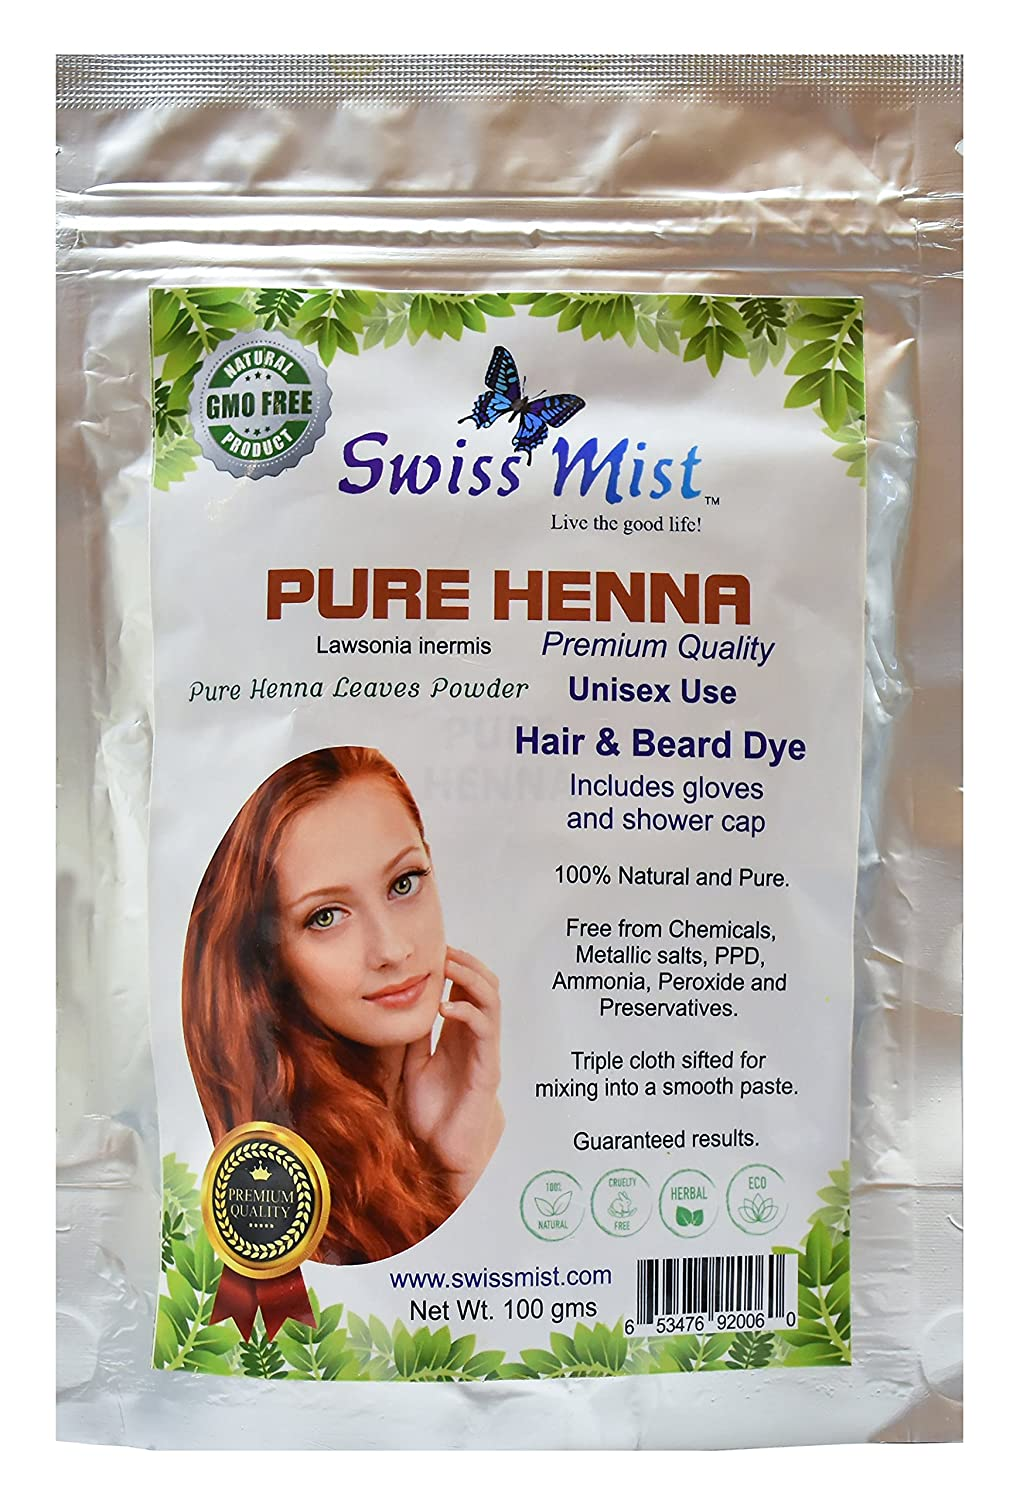 Amazon Com Swiss Mist Amber Red Pure Henna Hair Dye 100 Natural No Chemicals Metallic Salts Free From Ppd Ammonia Peroxide Gmo Free Triple Sifted For Quality Guaranteed Freshness 100 Grams 3 52 Oz Beauty